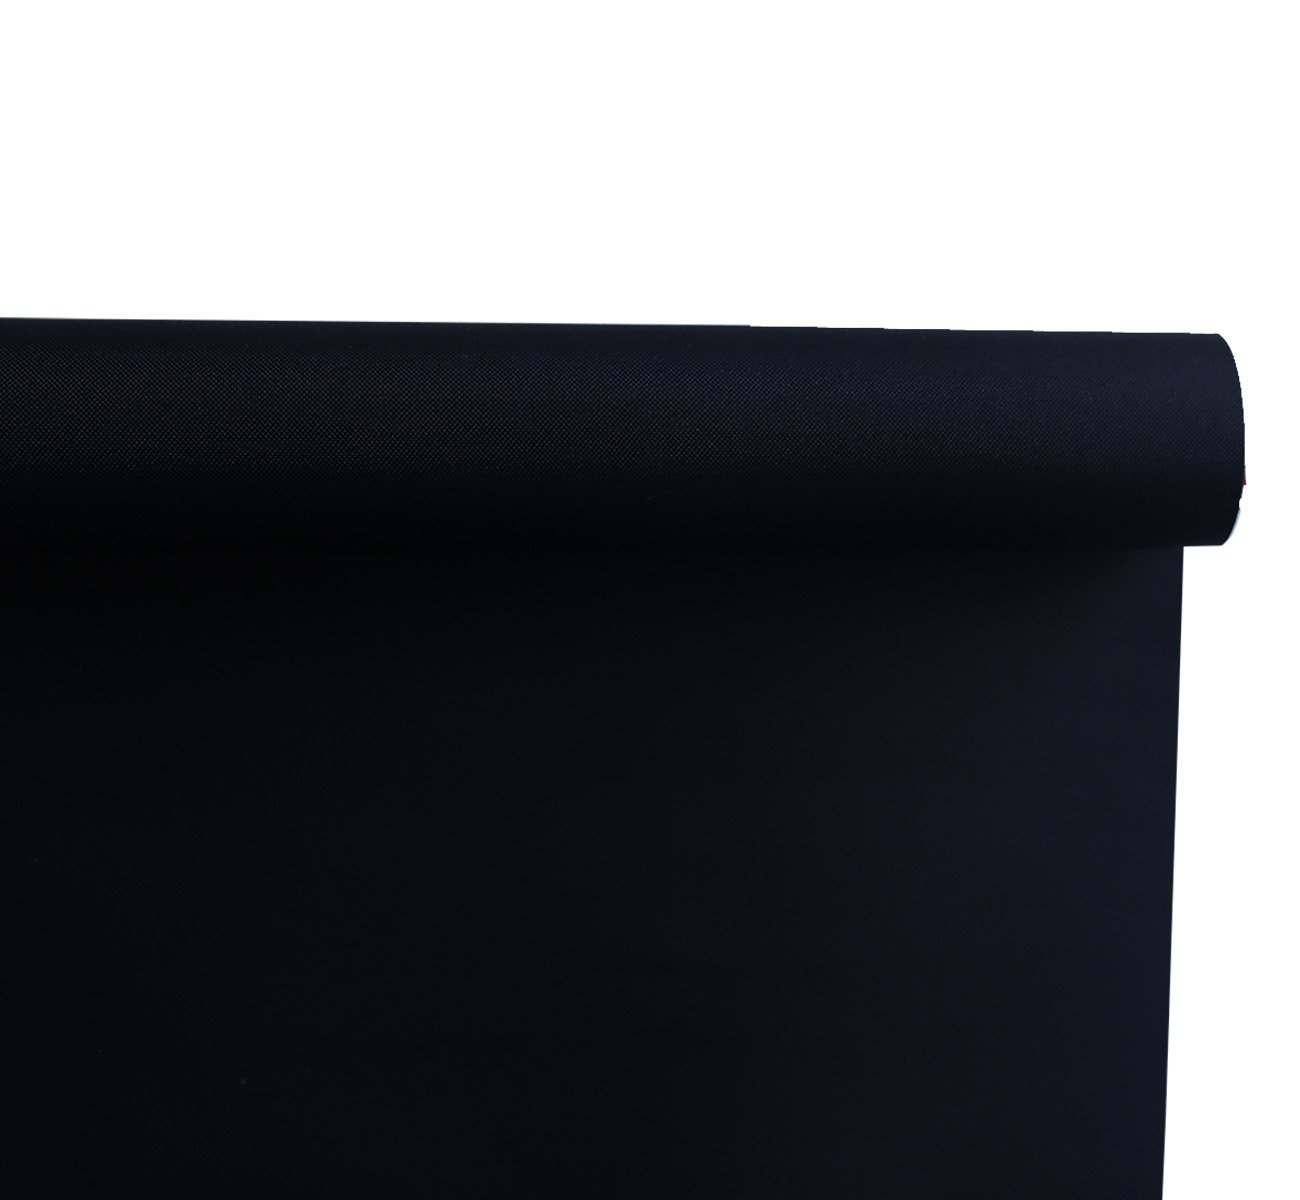 Beryhome Cristal Blackout Room Darkening Roller Shades/Blinds With Chain Cord. 20 Beautiful Colors Available. (W25''xH68'', Black) by Beryhome (Image #3)